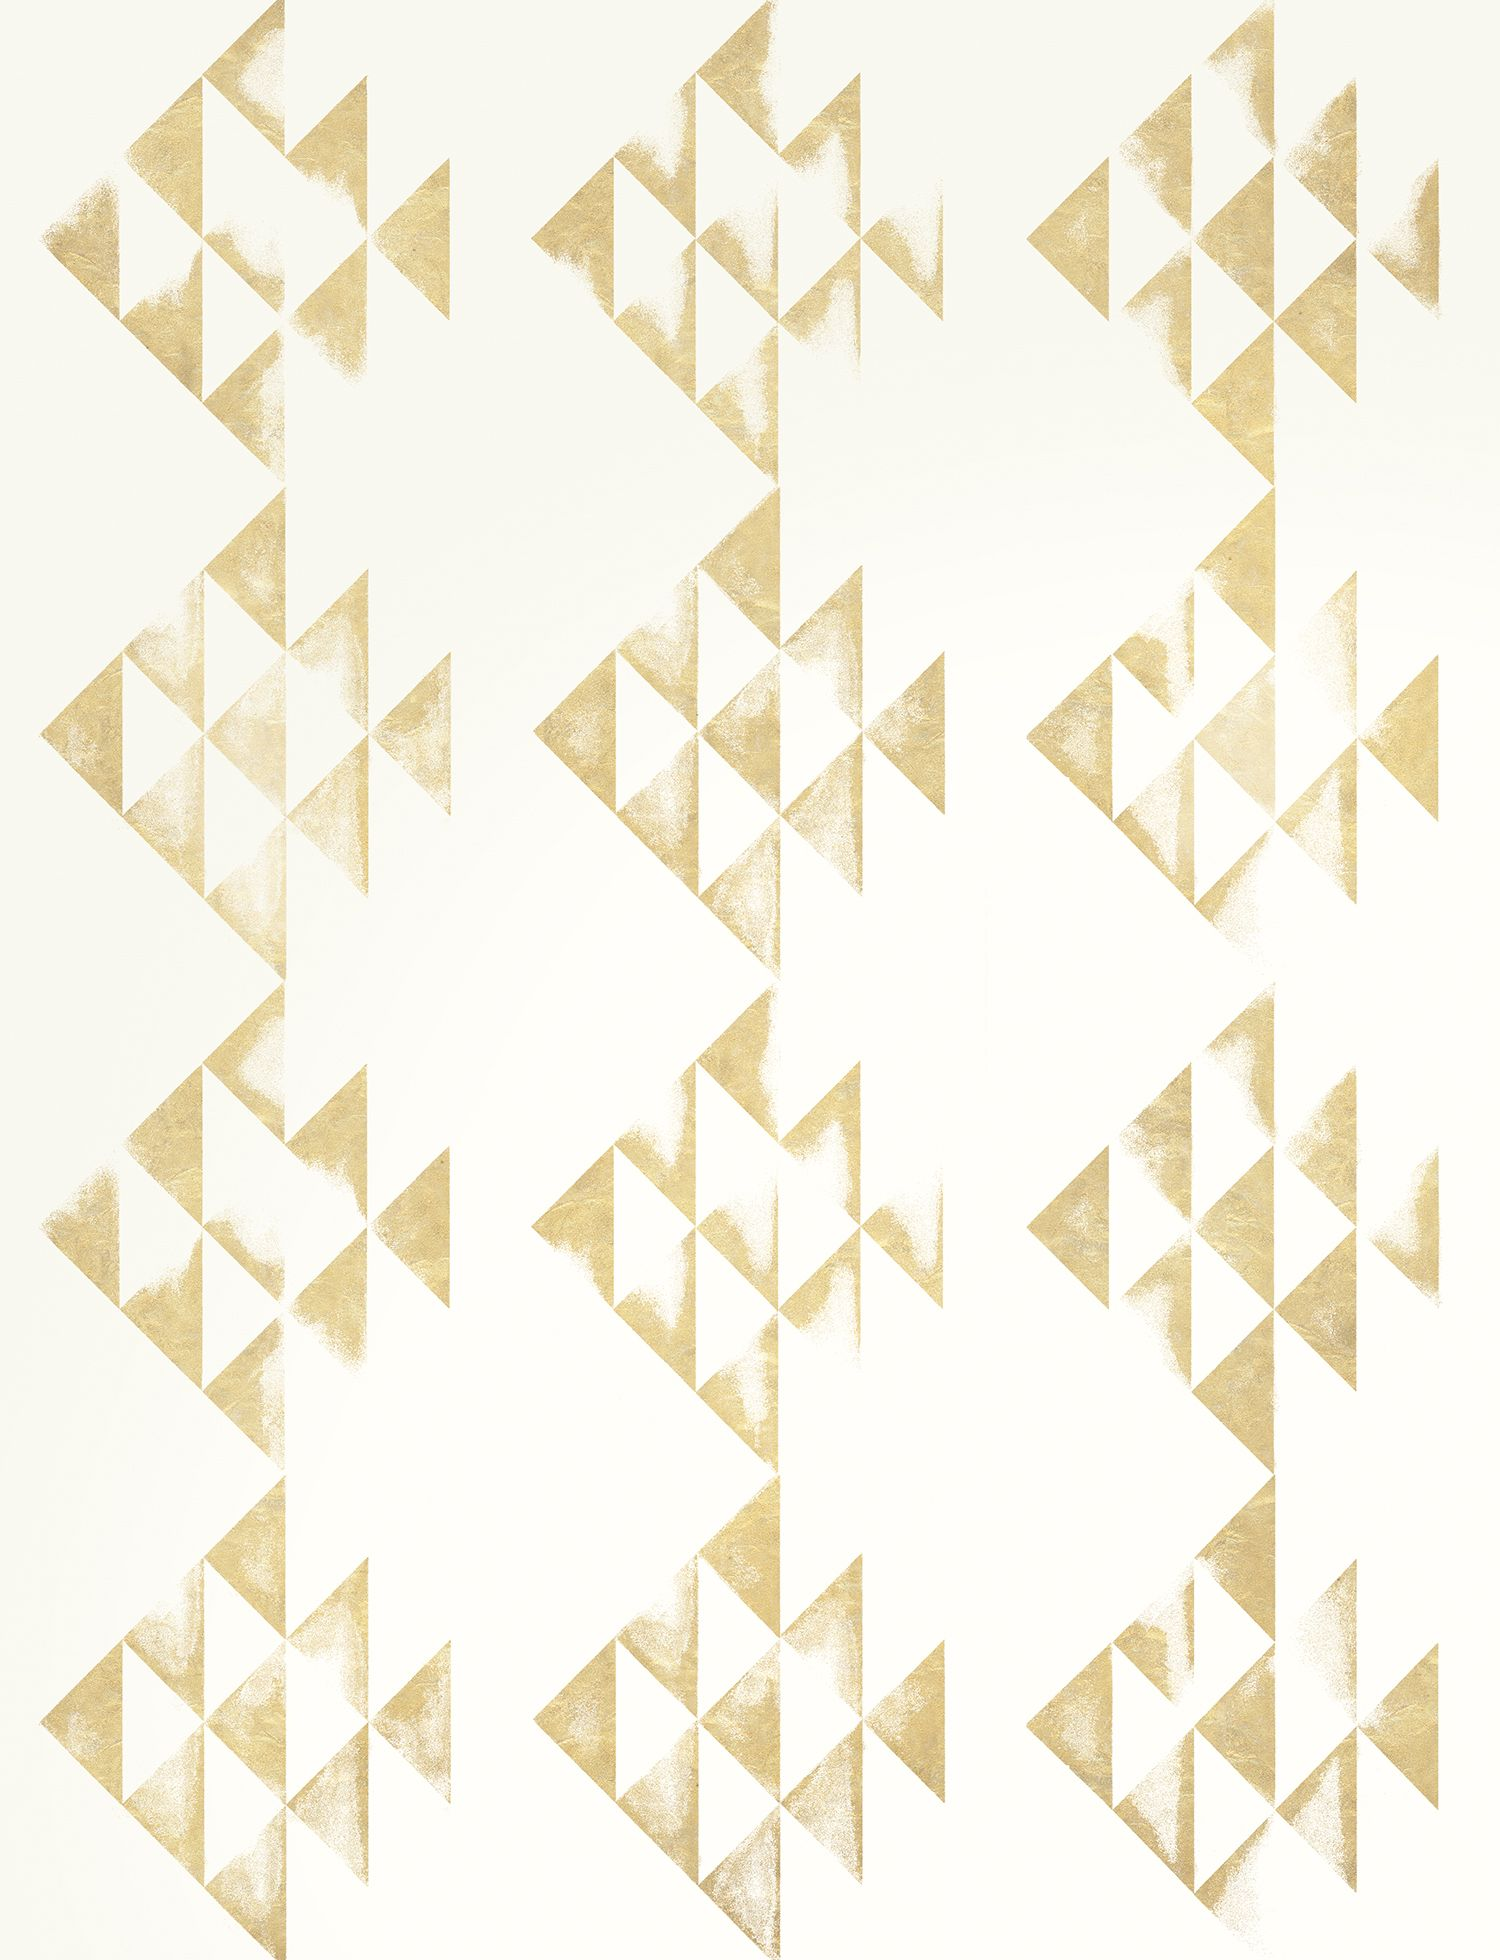 Amish Fish In Metallic Gold On Bone White From Manuka Textiles Gold